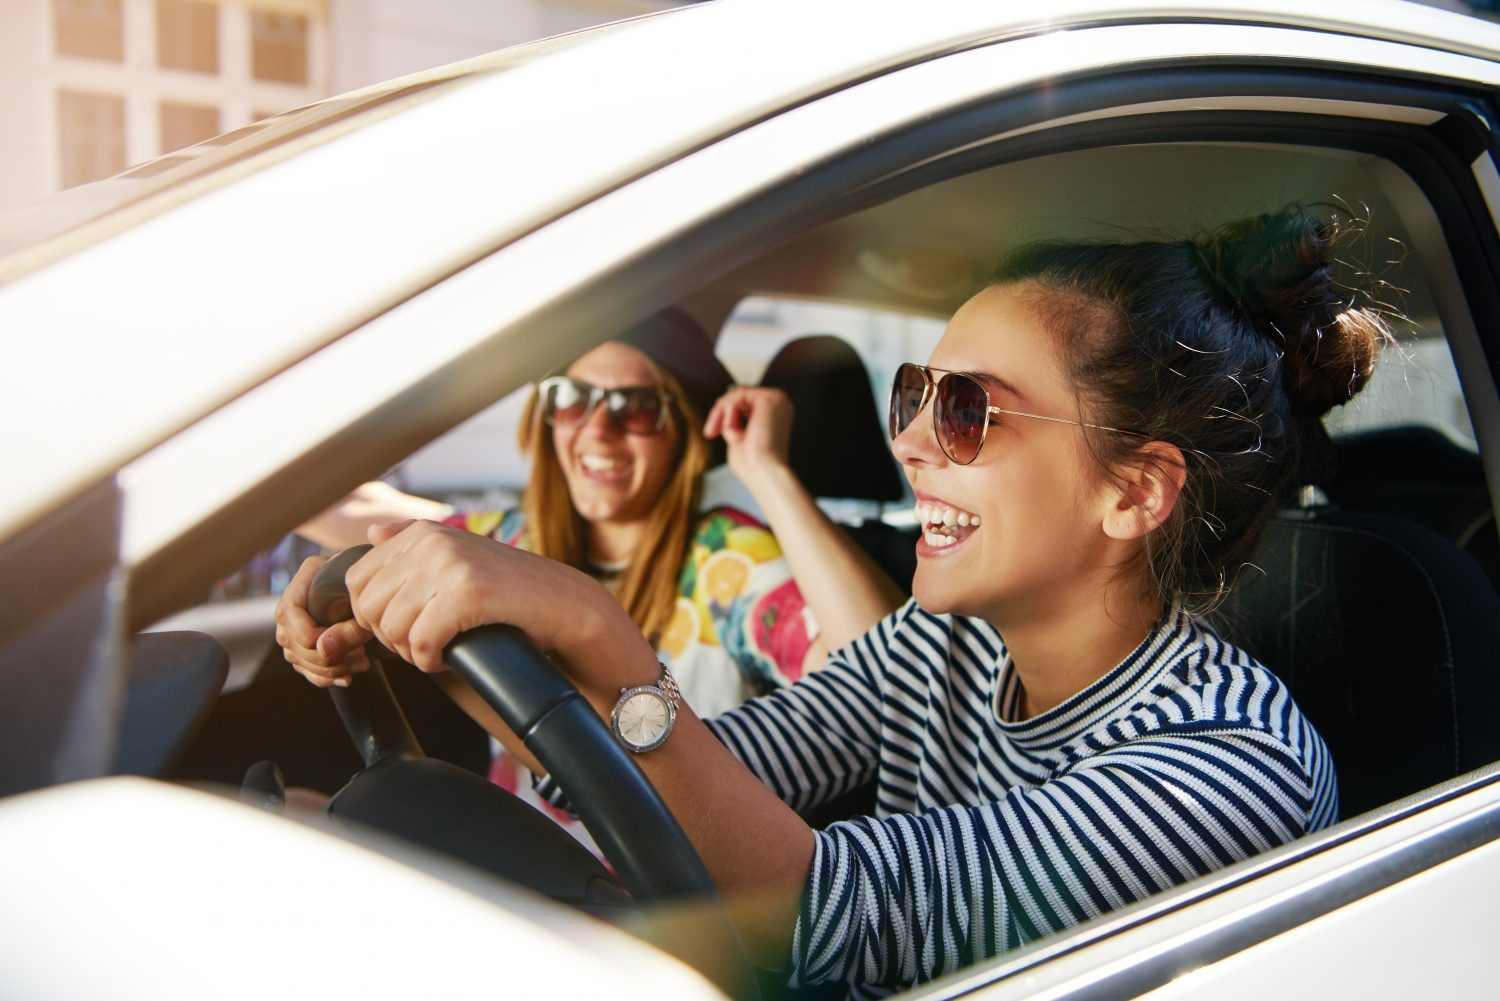 teen driver with a passenger laughing